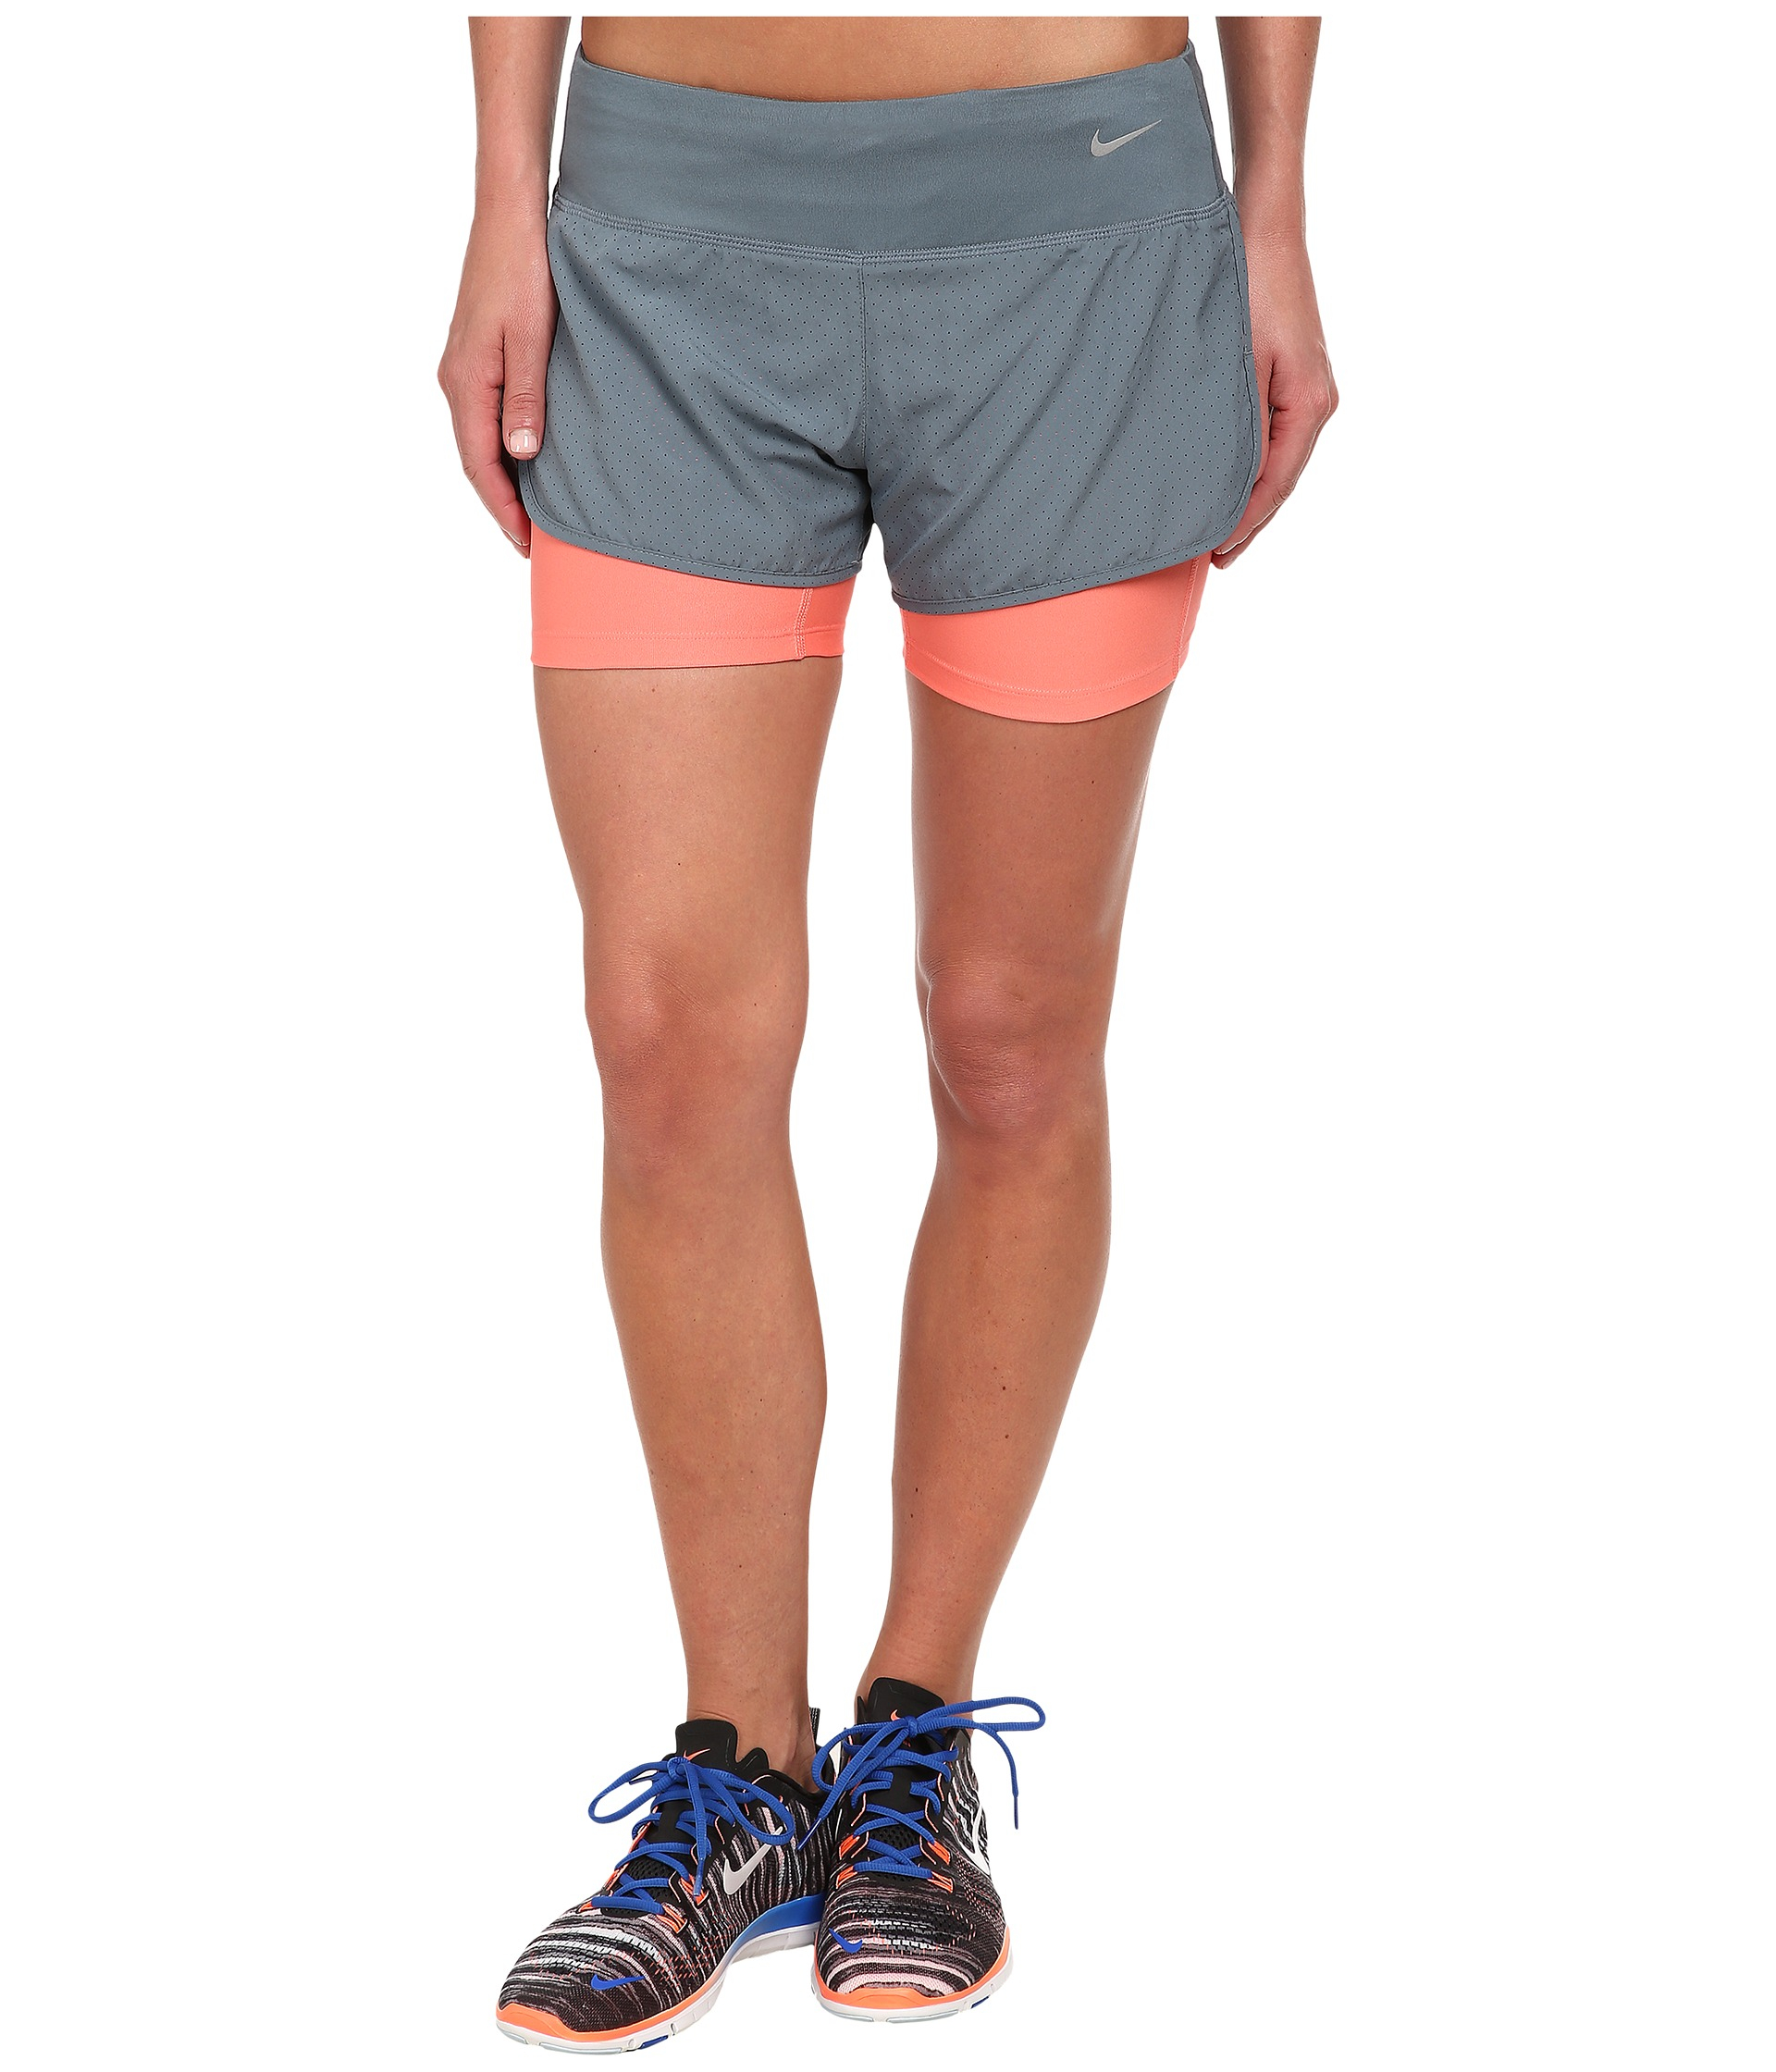 15646120d1ac0 Nike Perforated Rival 2-in-1 Short in Blue - Lyst